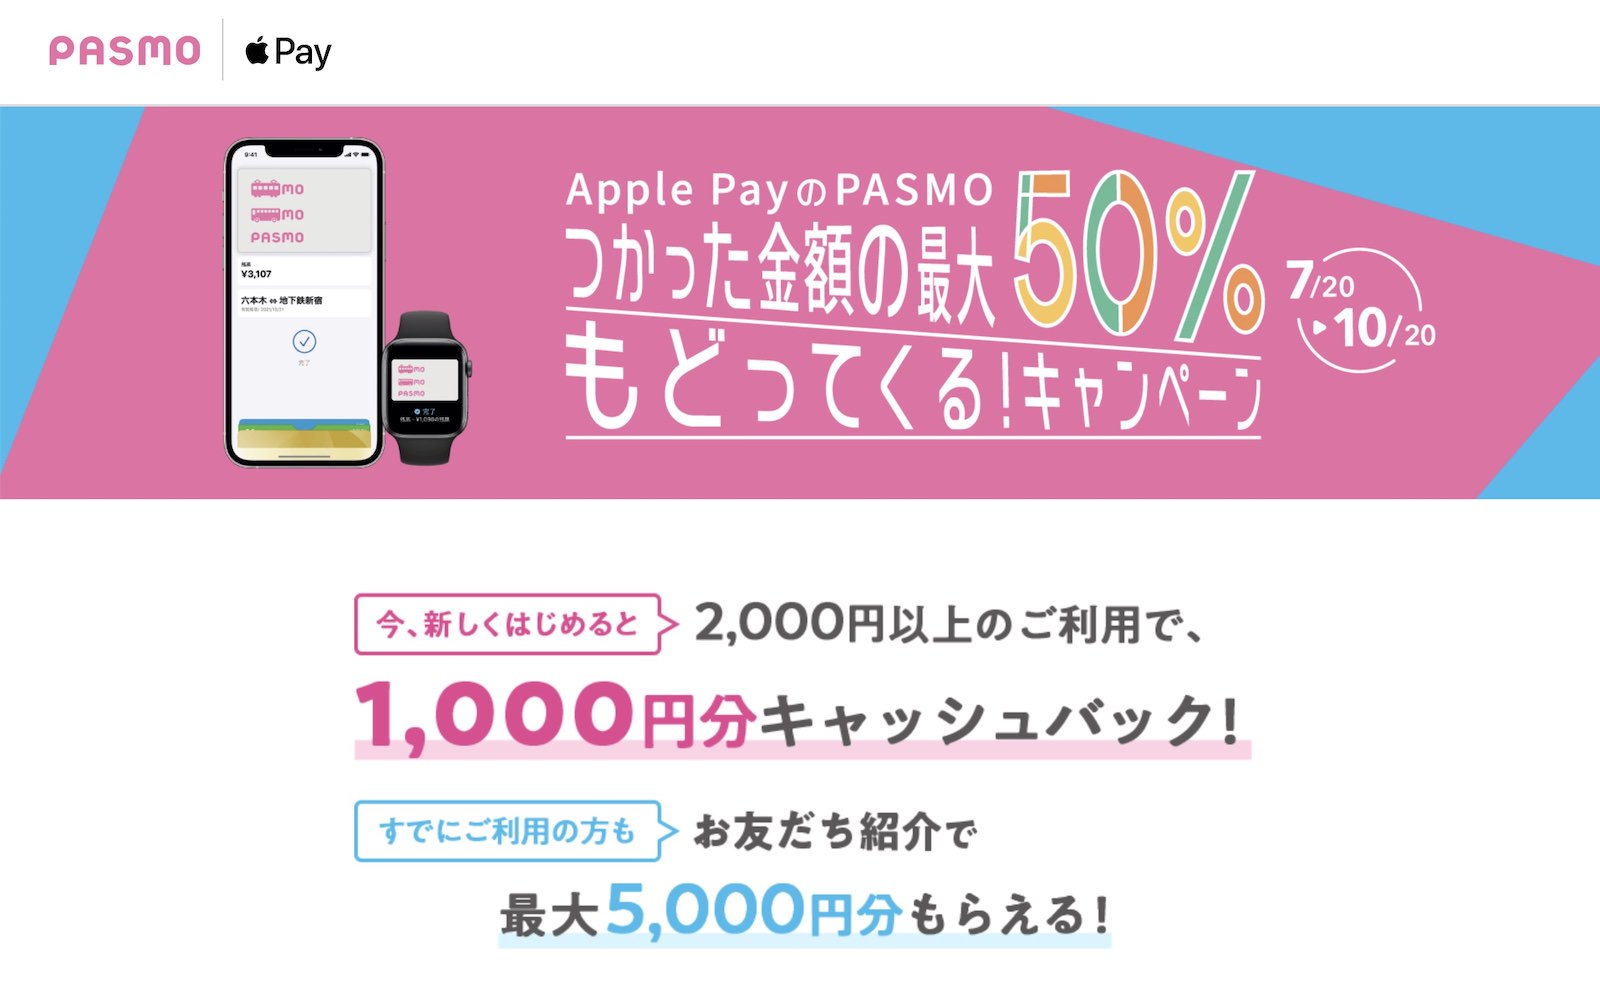 Pasmo apple pay campaign